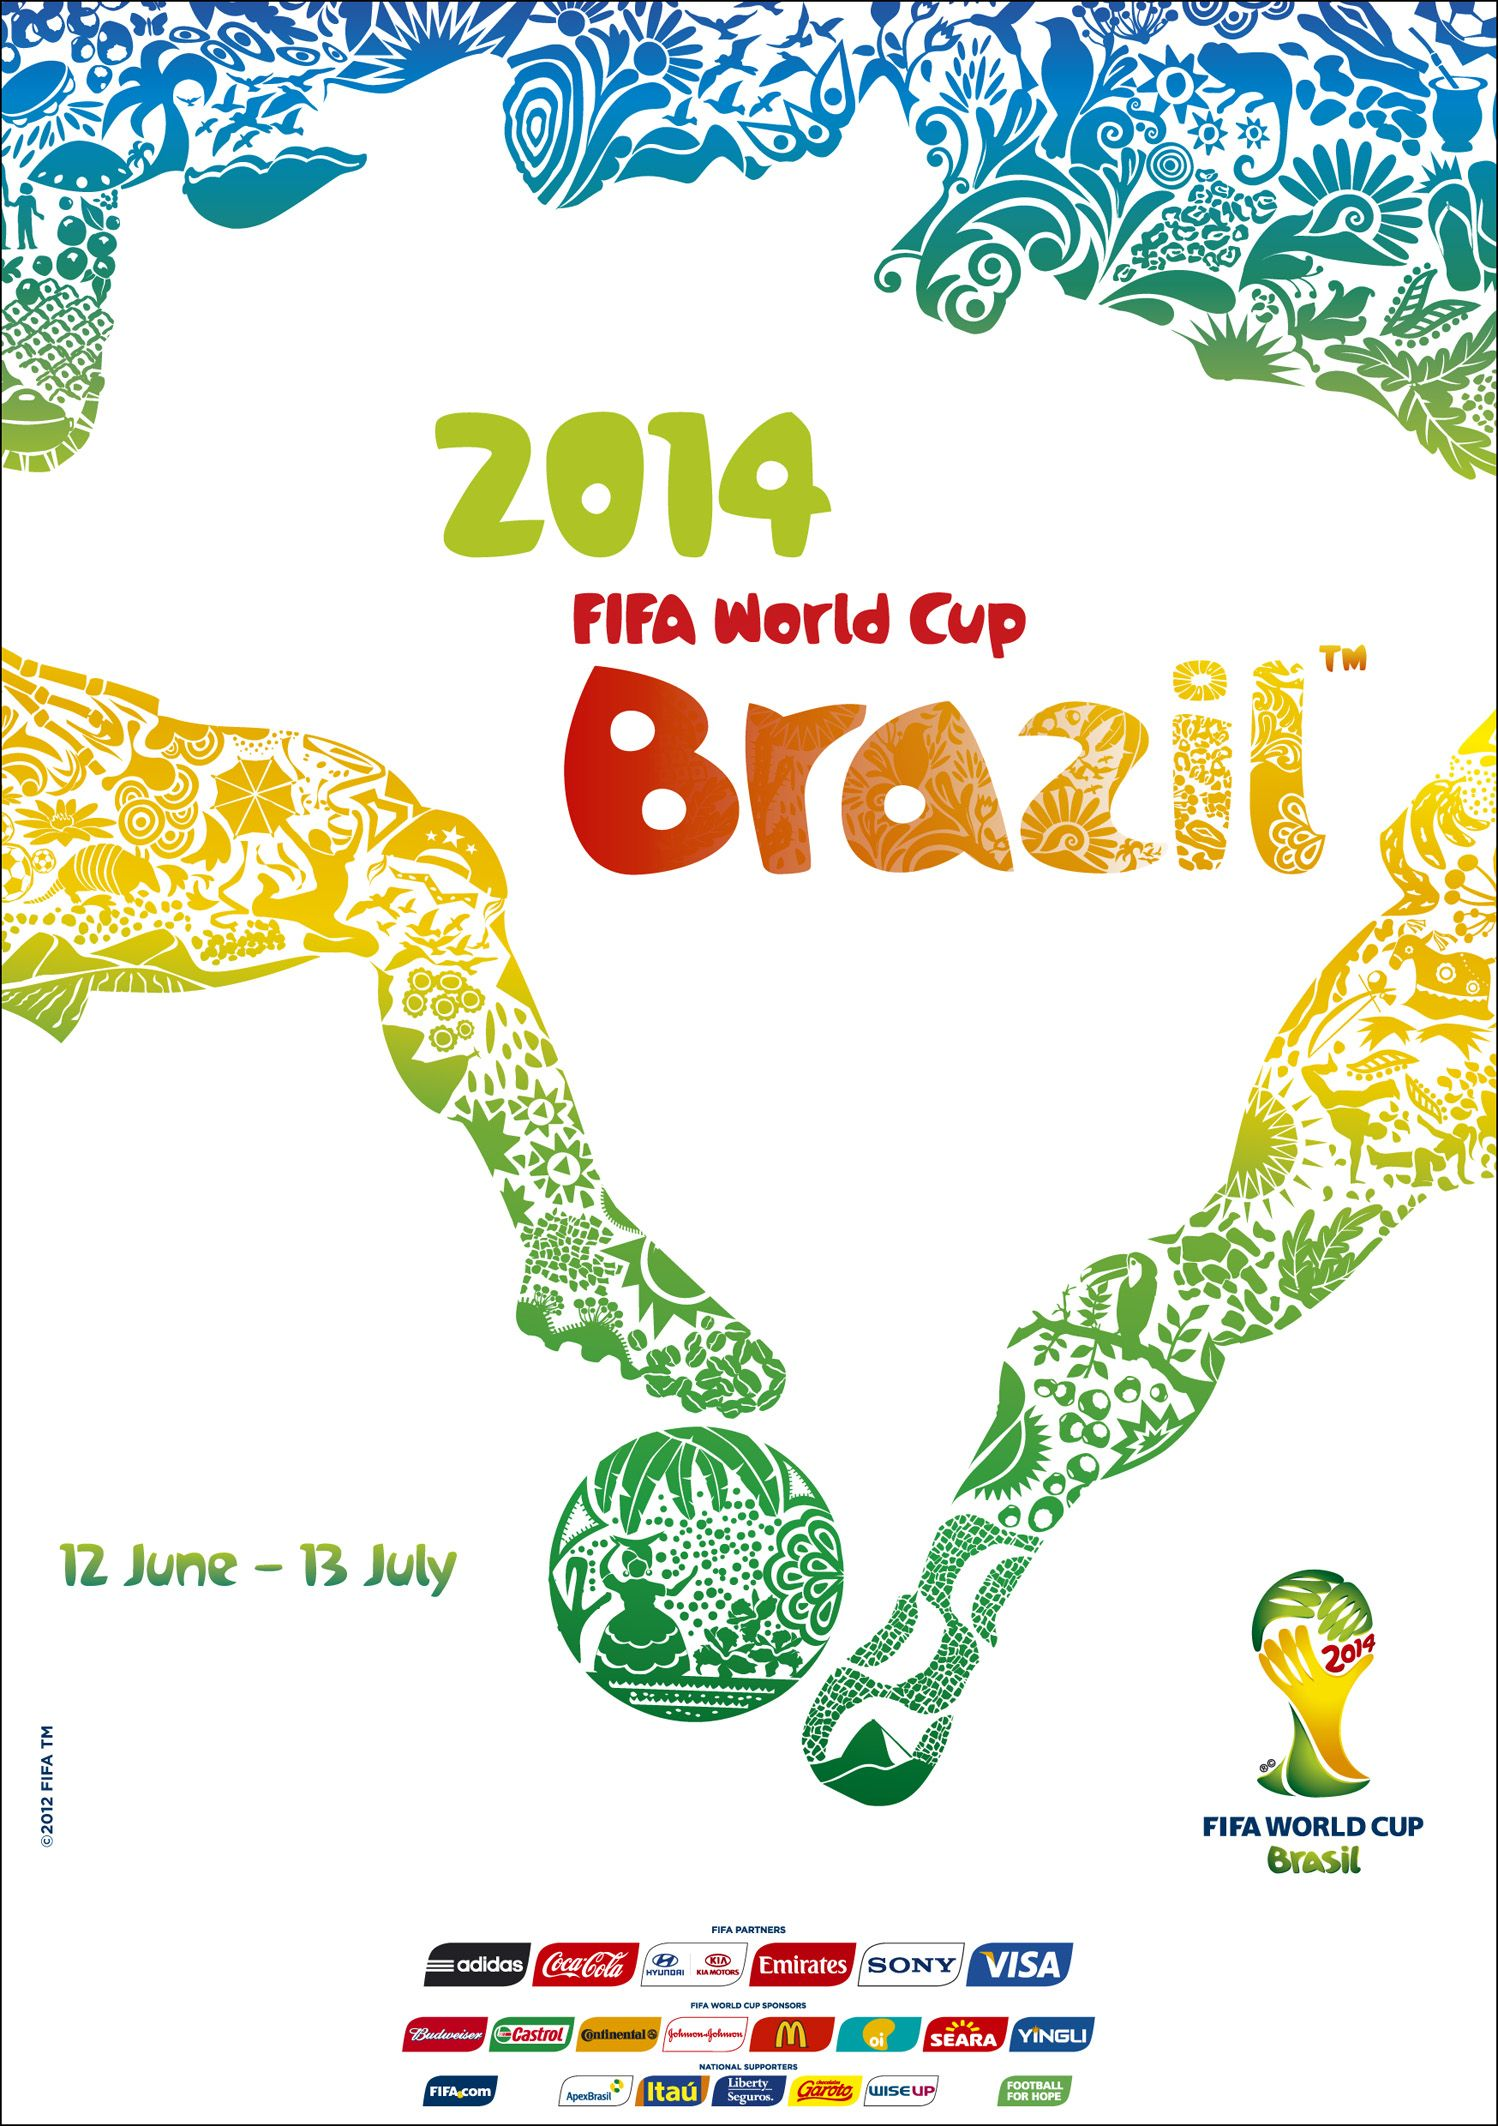 Poster design 2014 - Find This Pin And More On Design By Annajp Fifa World Cup 2014 Official Poster